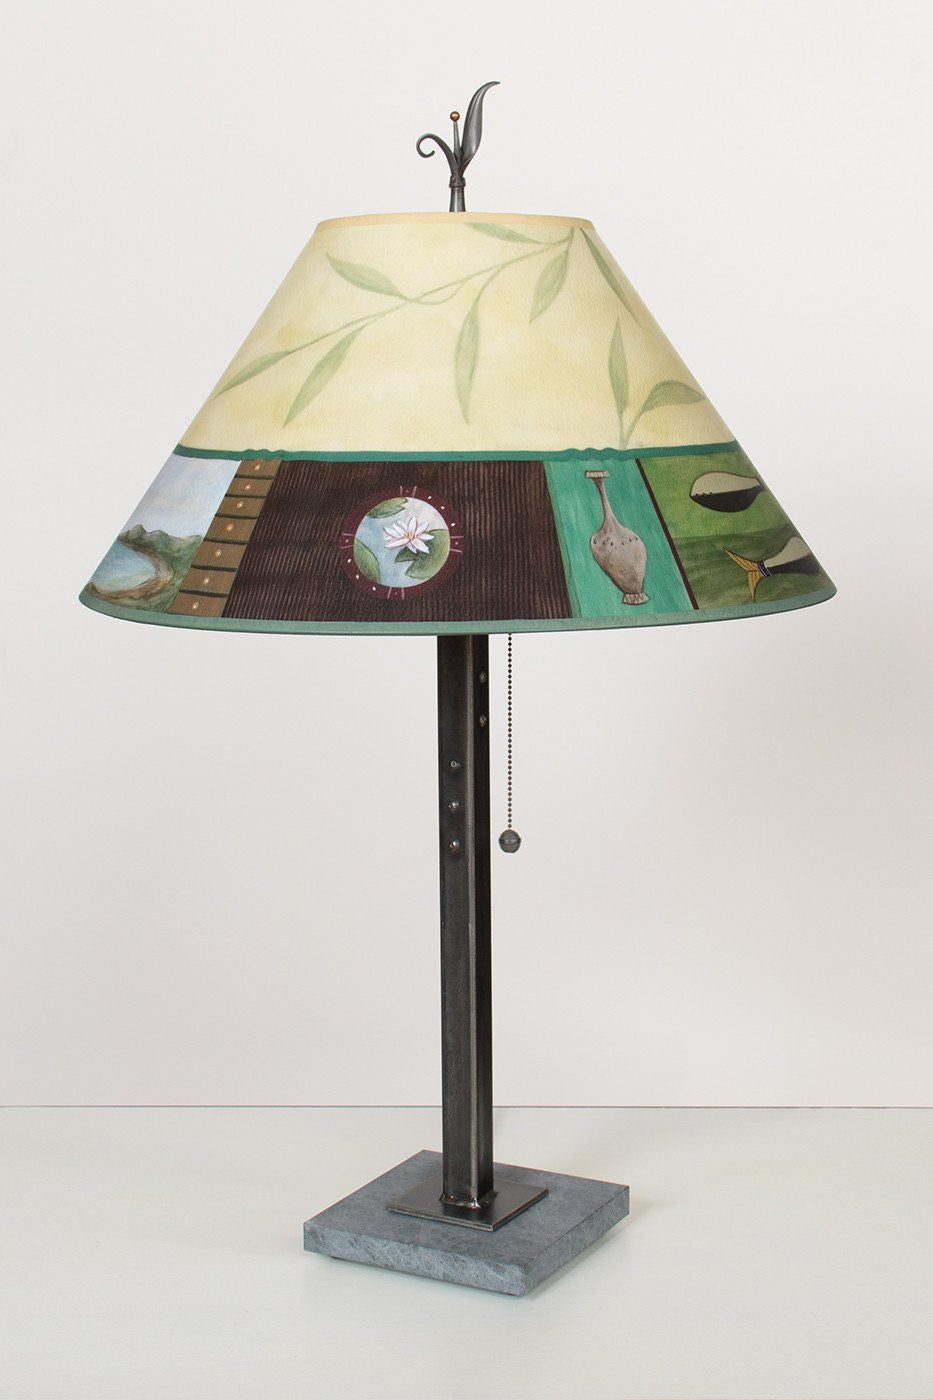 Steel Table Lamp on Italian Marble with Large Conical Shade in Twin Fish